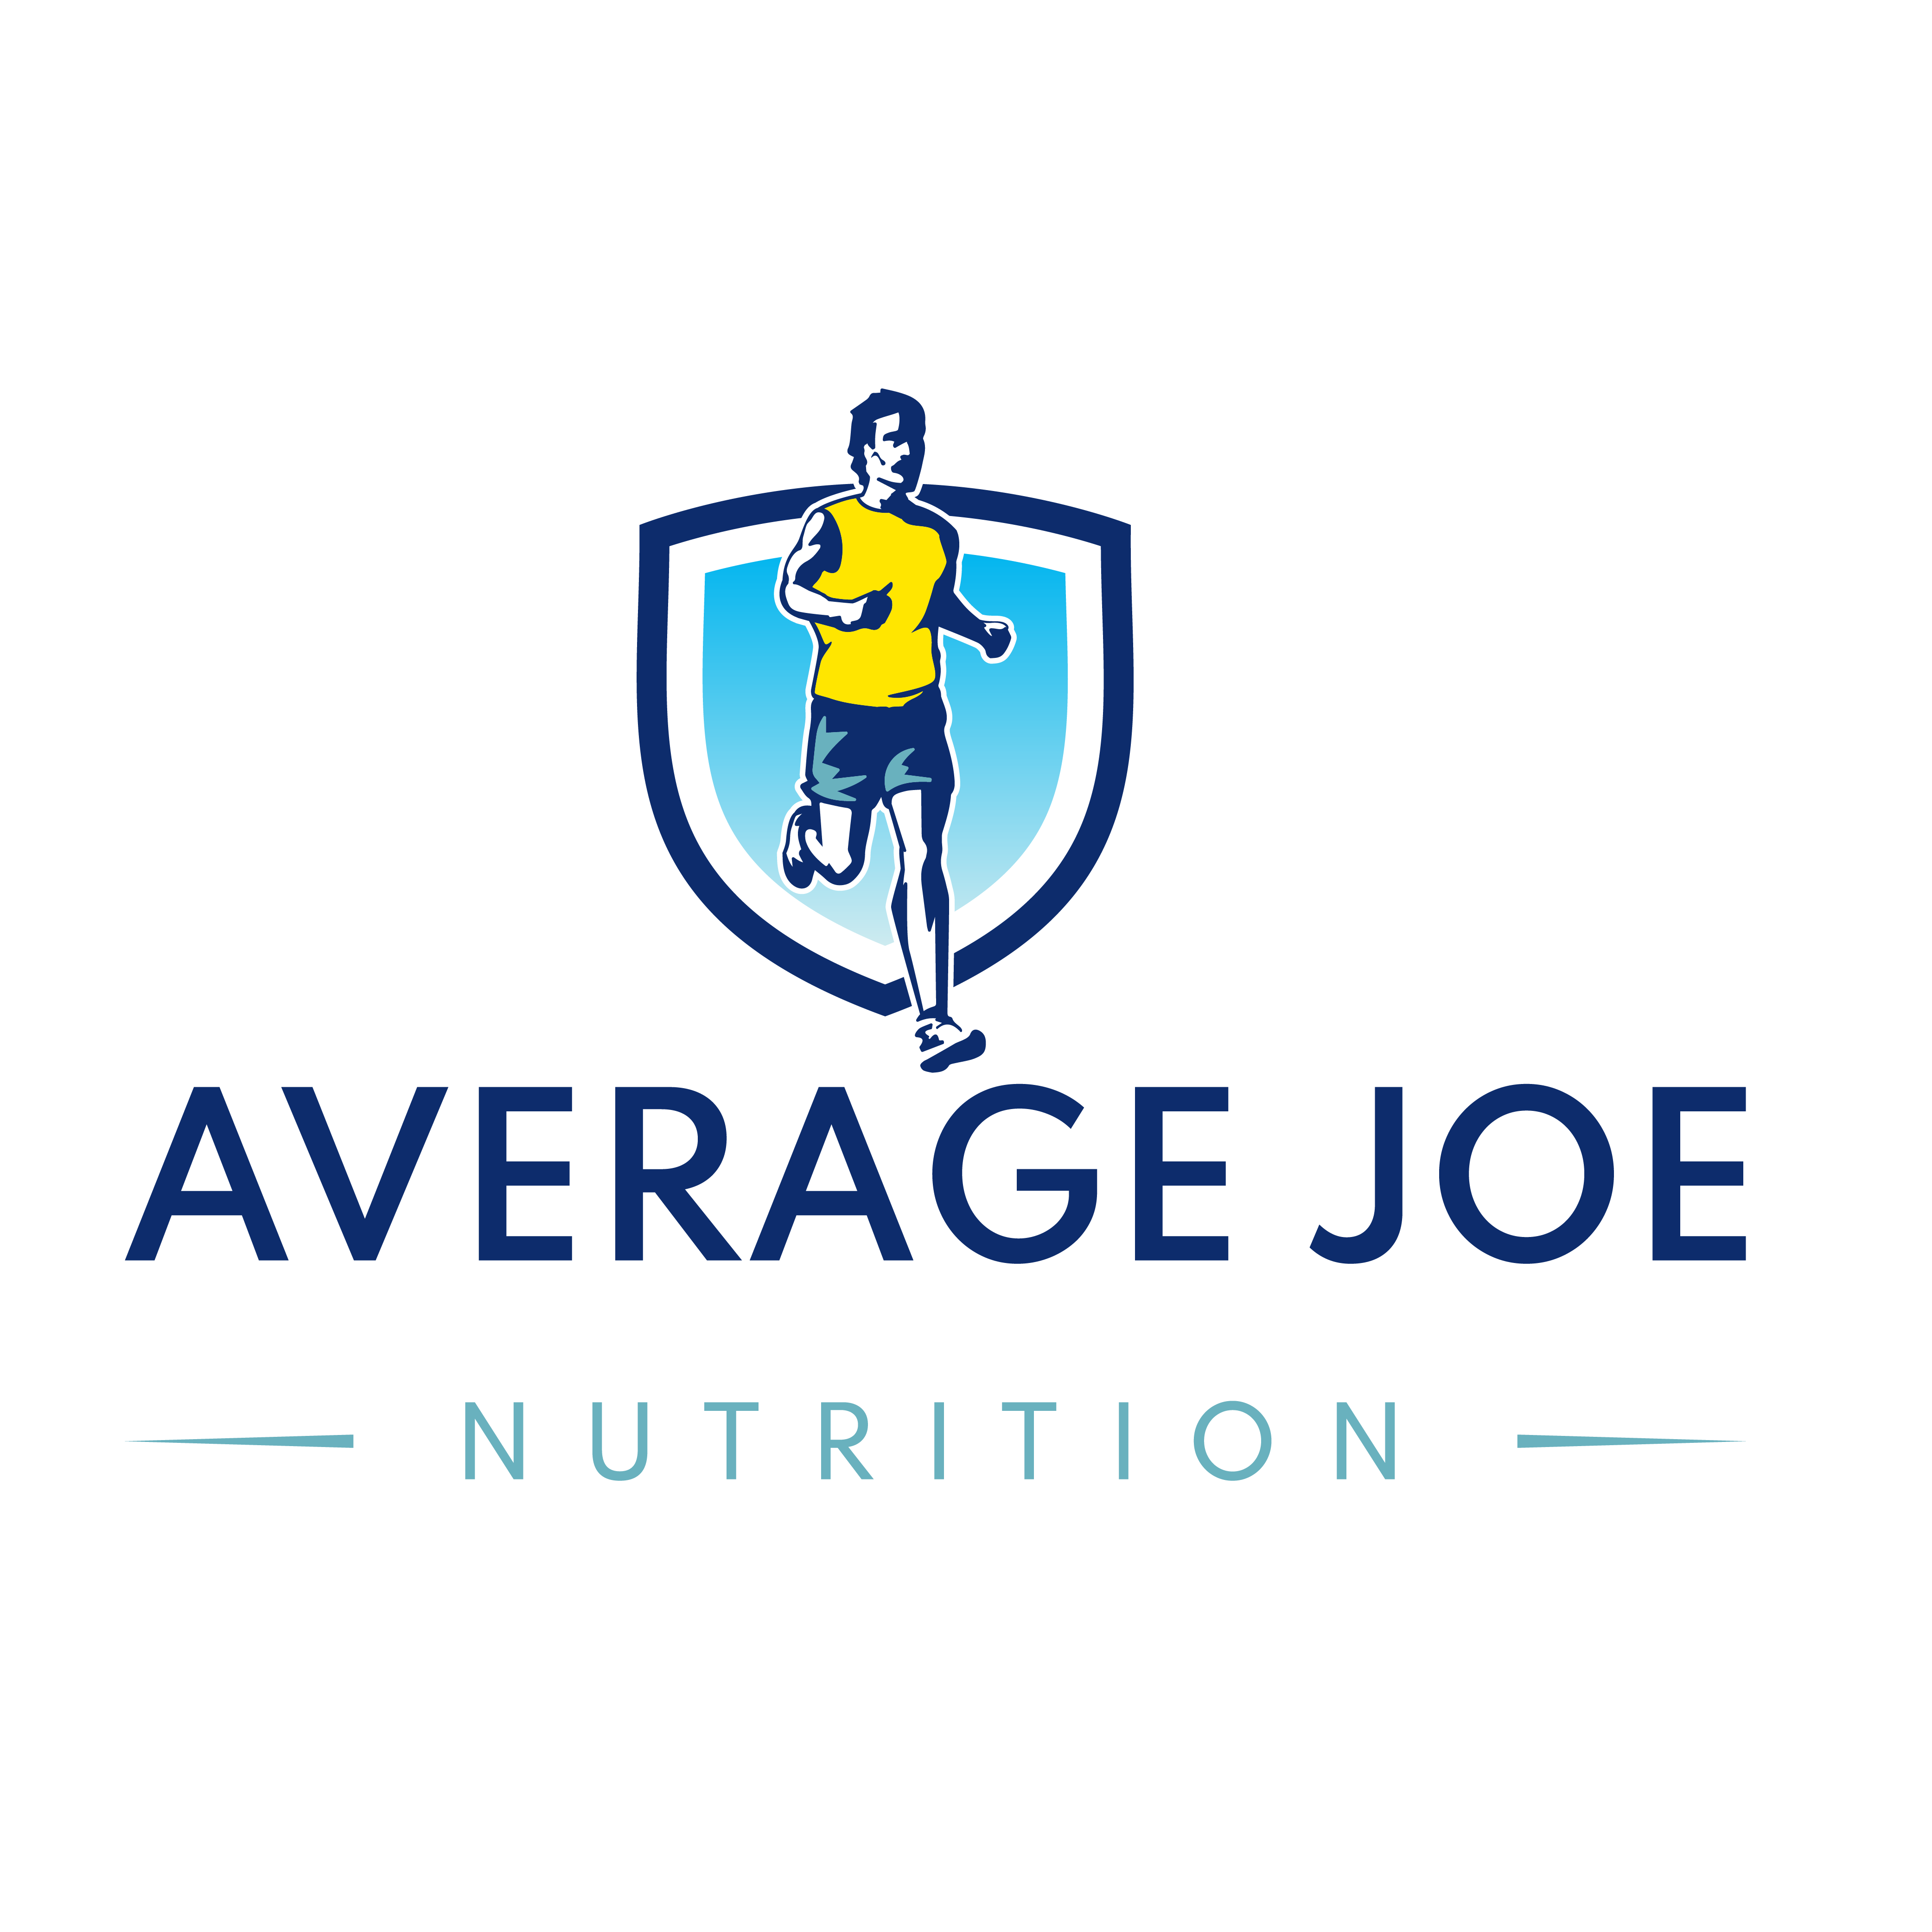 Build logo and brand Identity for a new supplements company